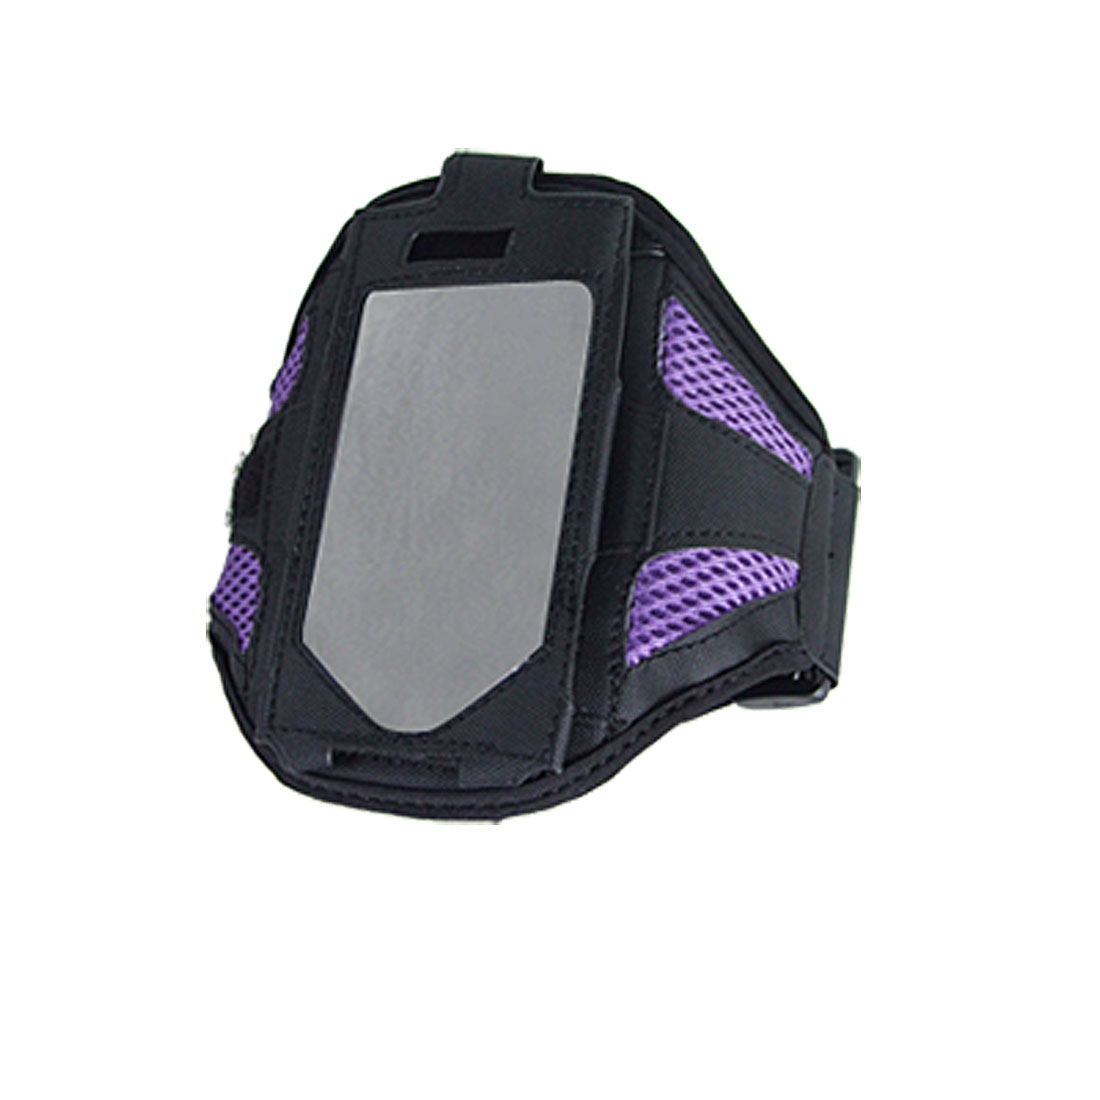 Black Purple Sports Mesh Adjustable Armband Holder for iPhone 4